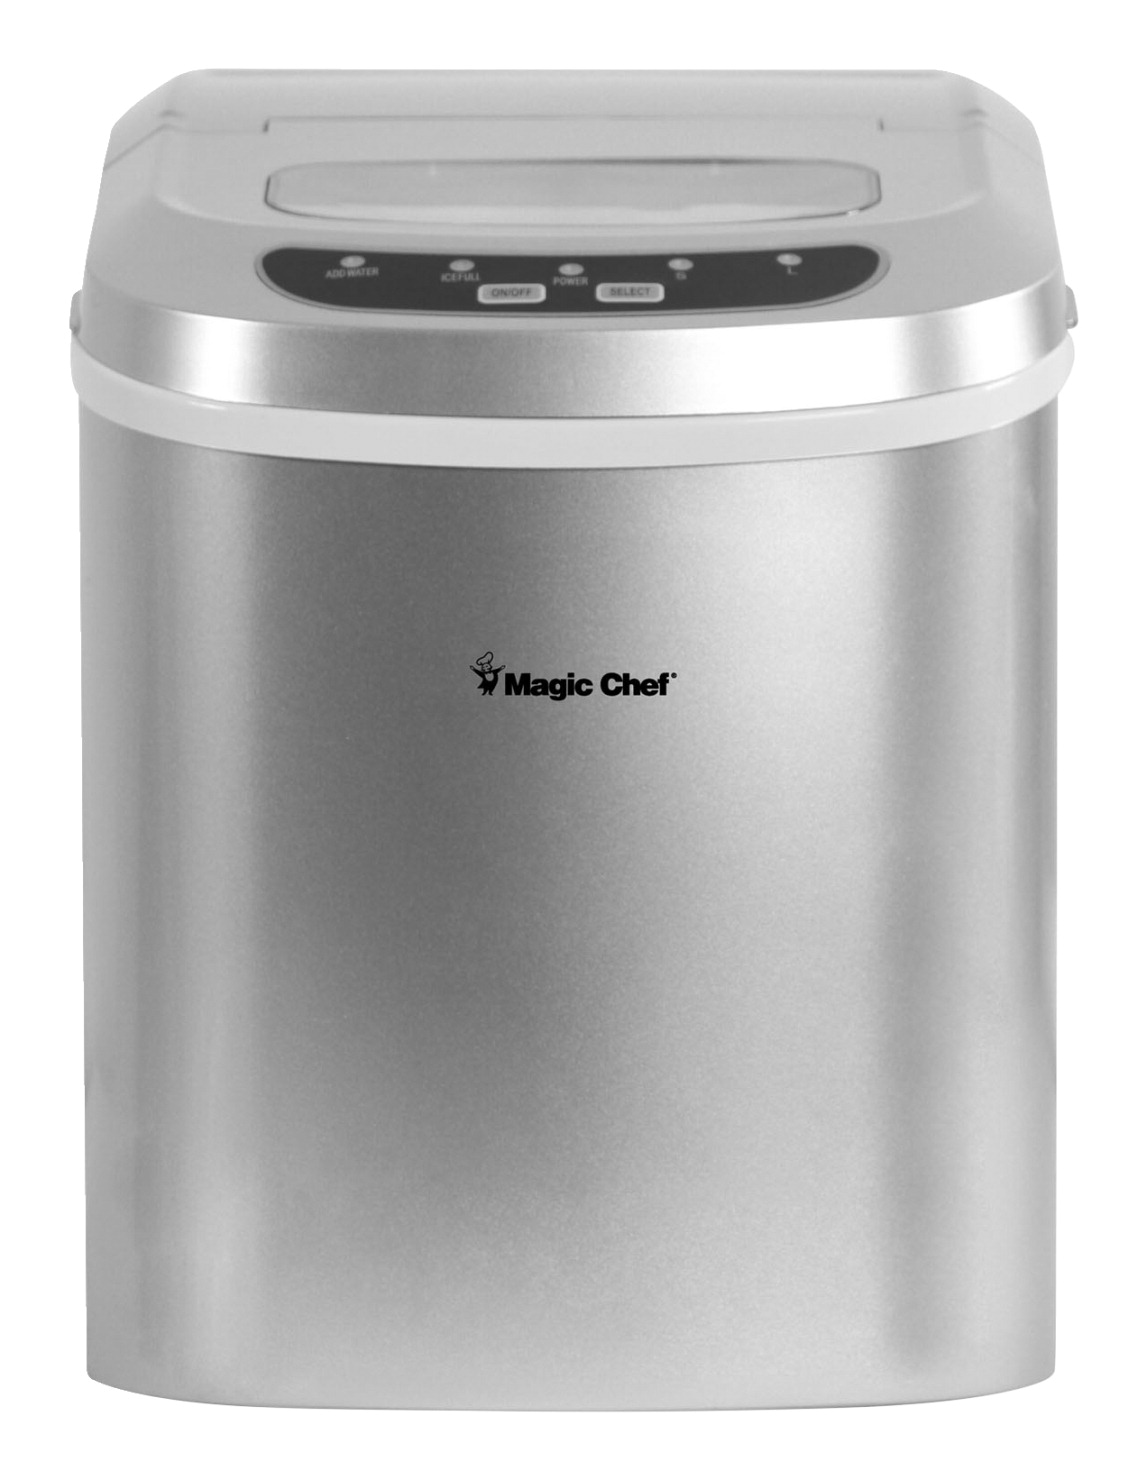 Magic Chef Countertop Ice Maker, 27 Pounds of Ice, Silver